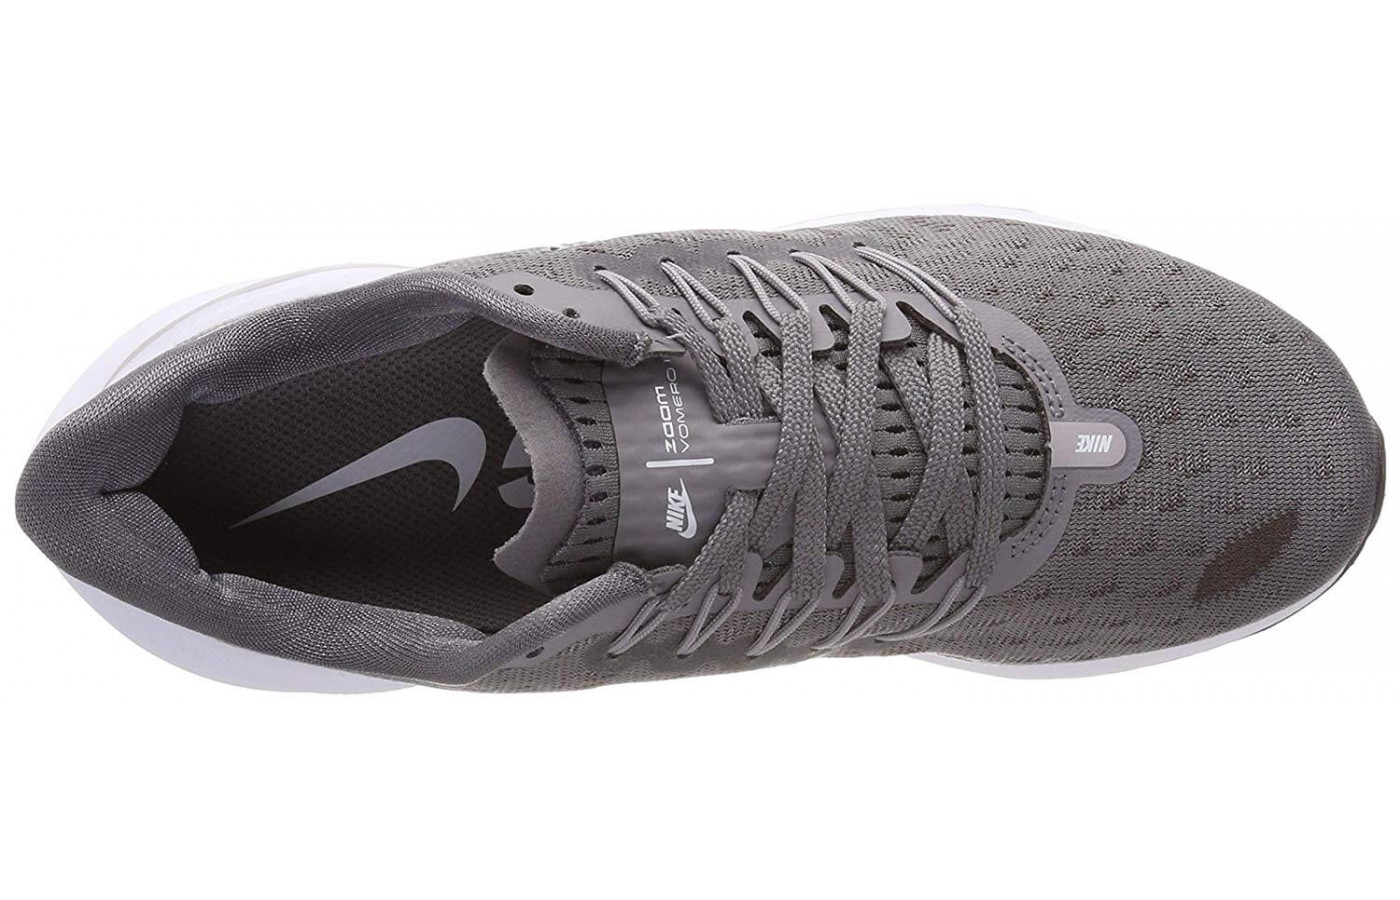 Nike Zoom Vomero 14 Top